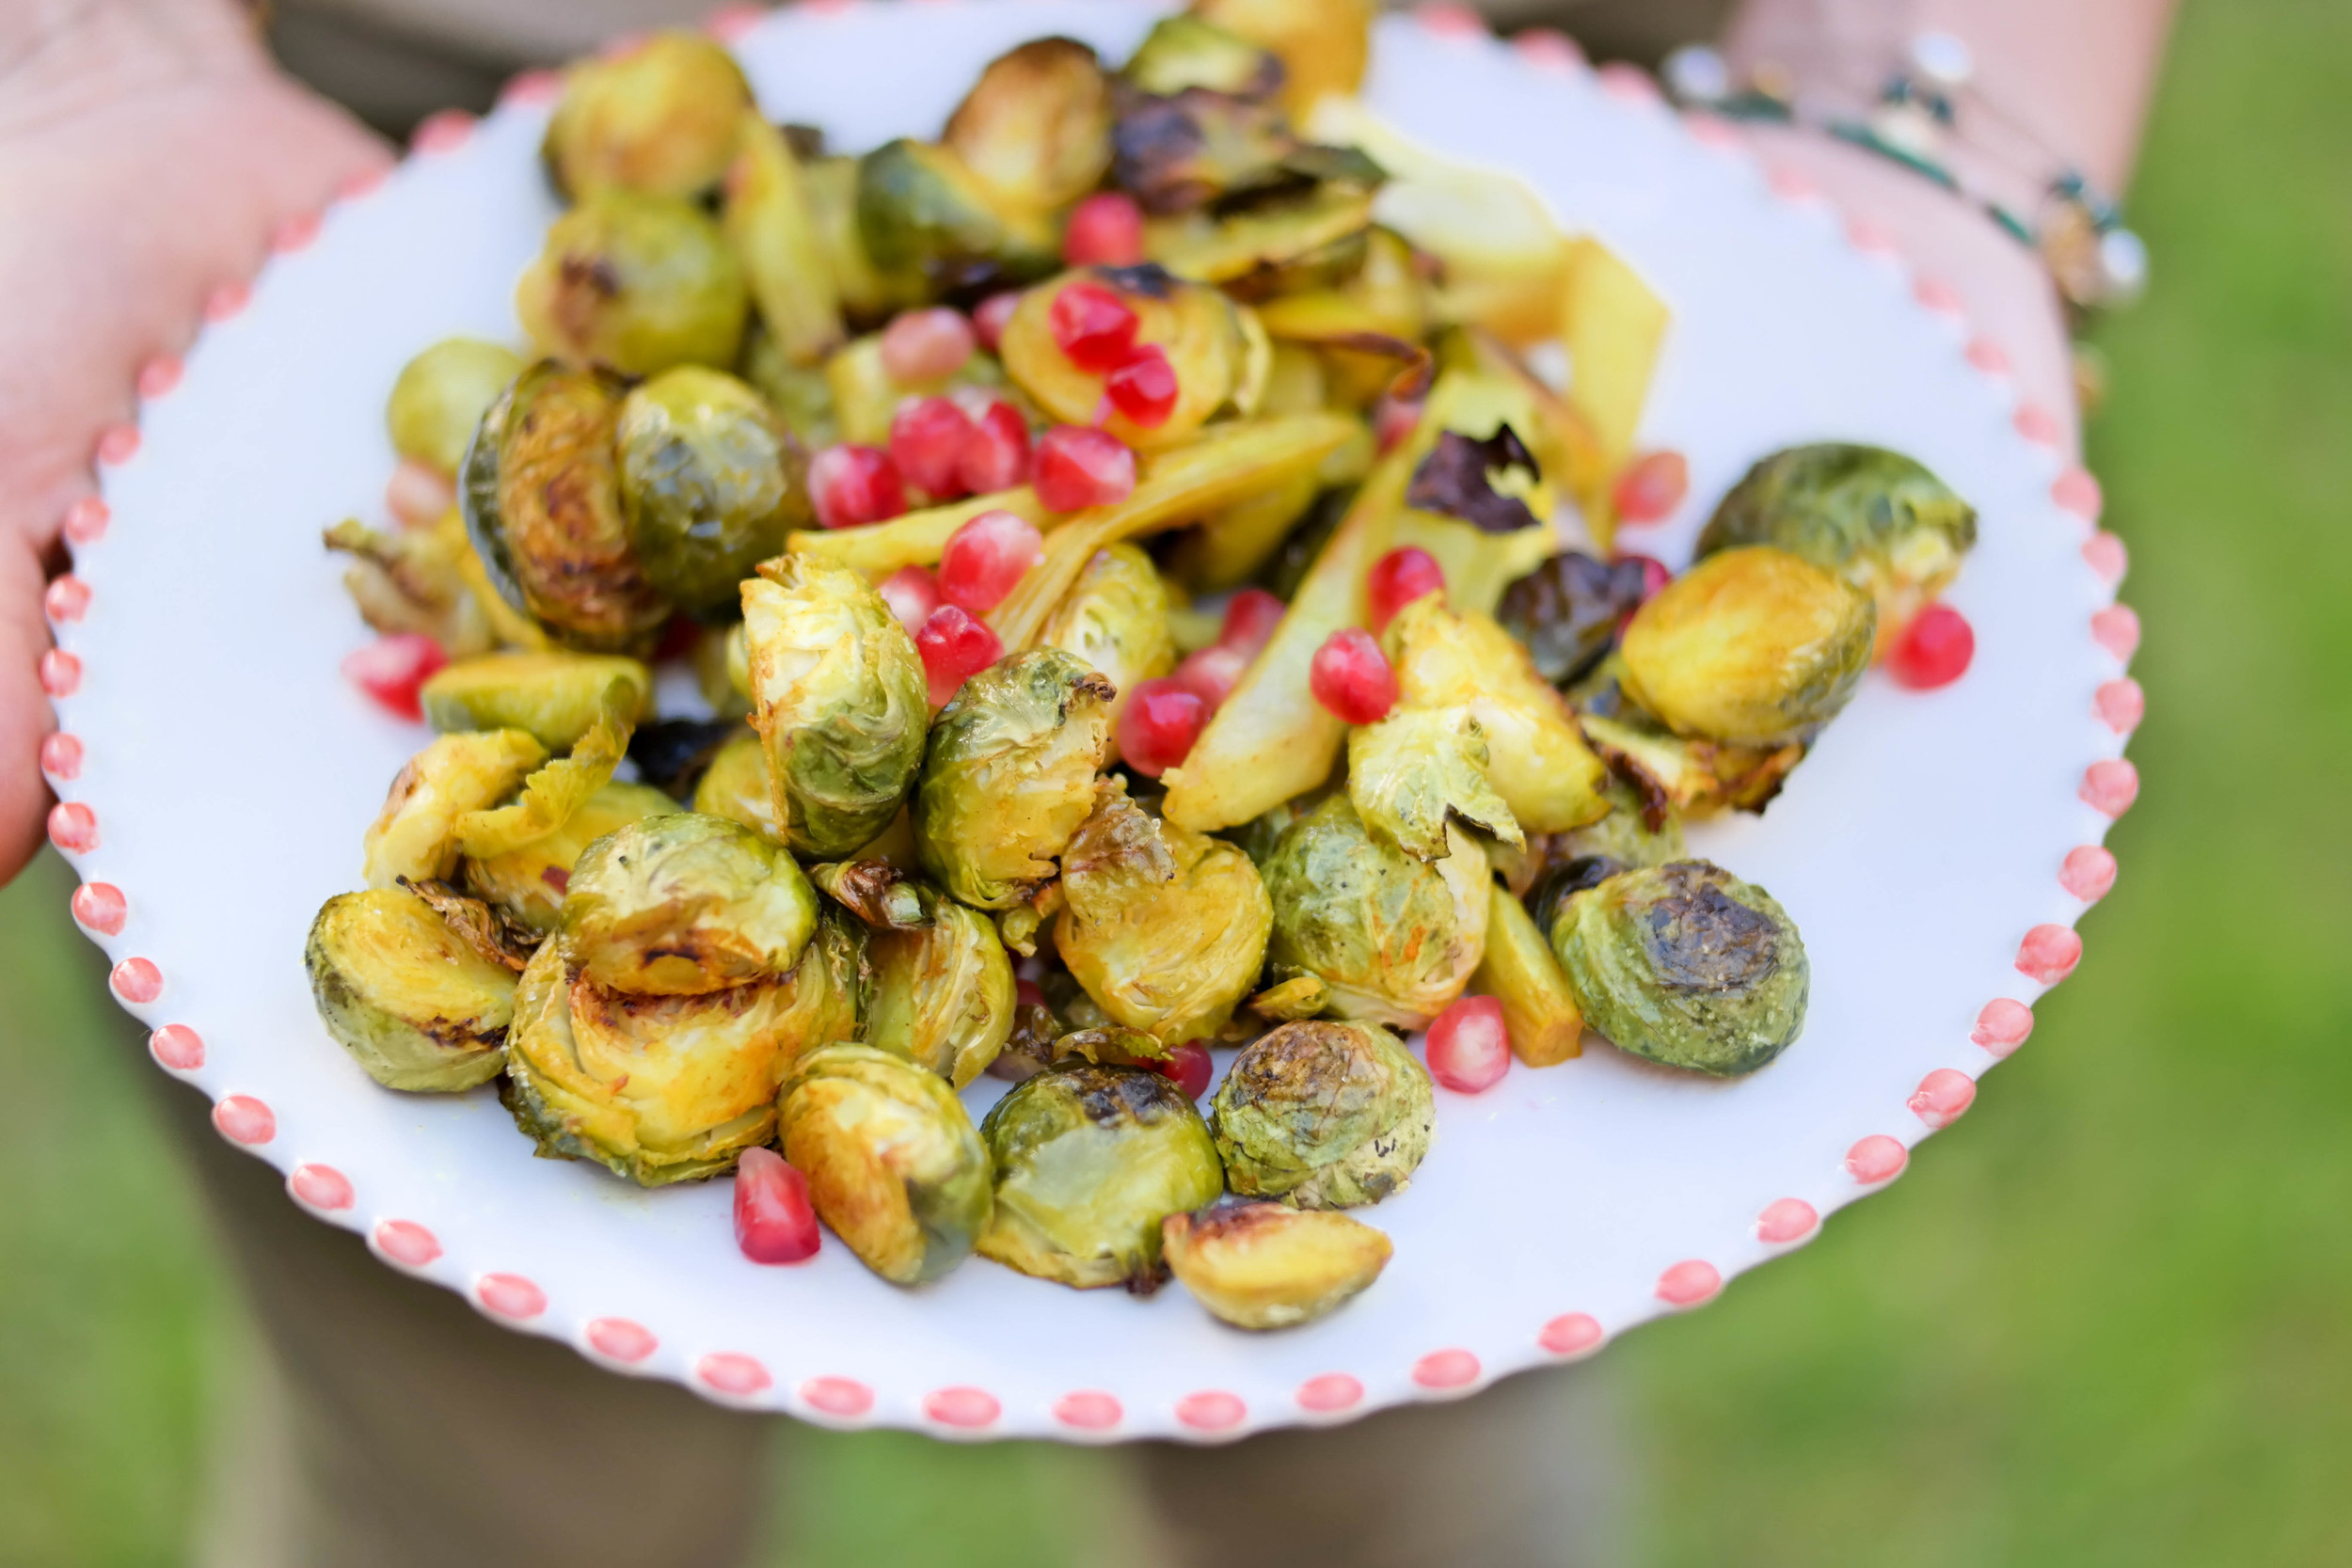 5-Thanksgiving-Ideas-Roasted-Brussel-Sprouts-with-fennel-and-pomegranate-seeds | www.8thandlake.com